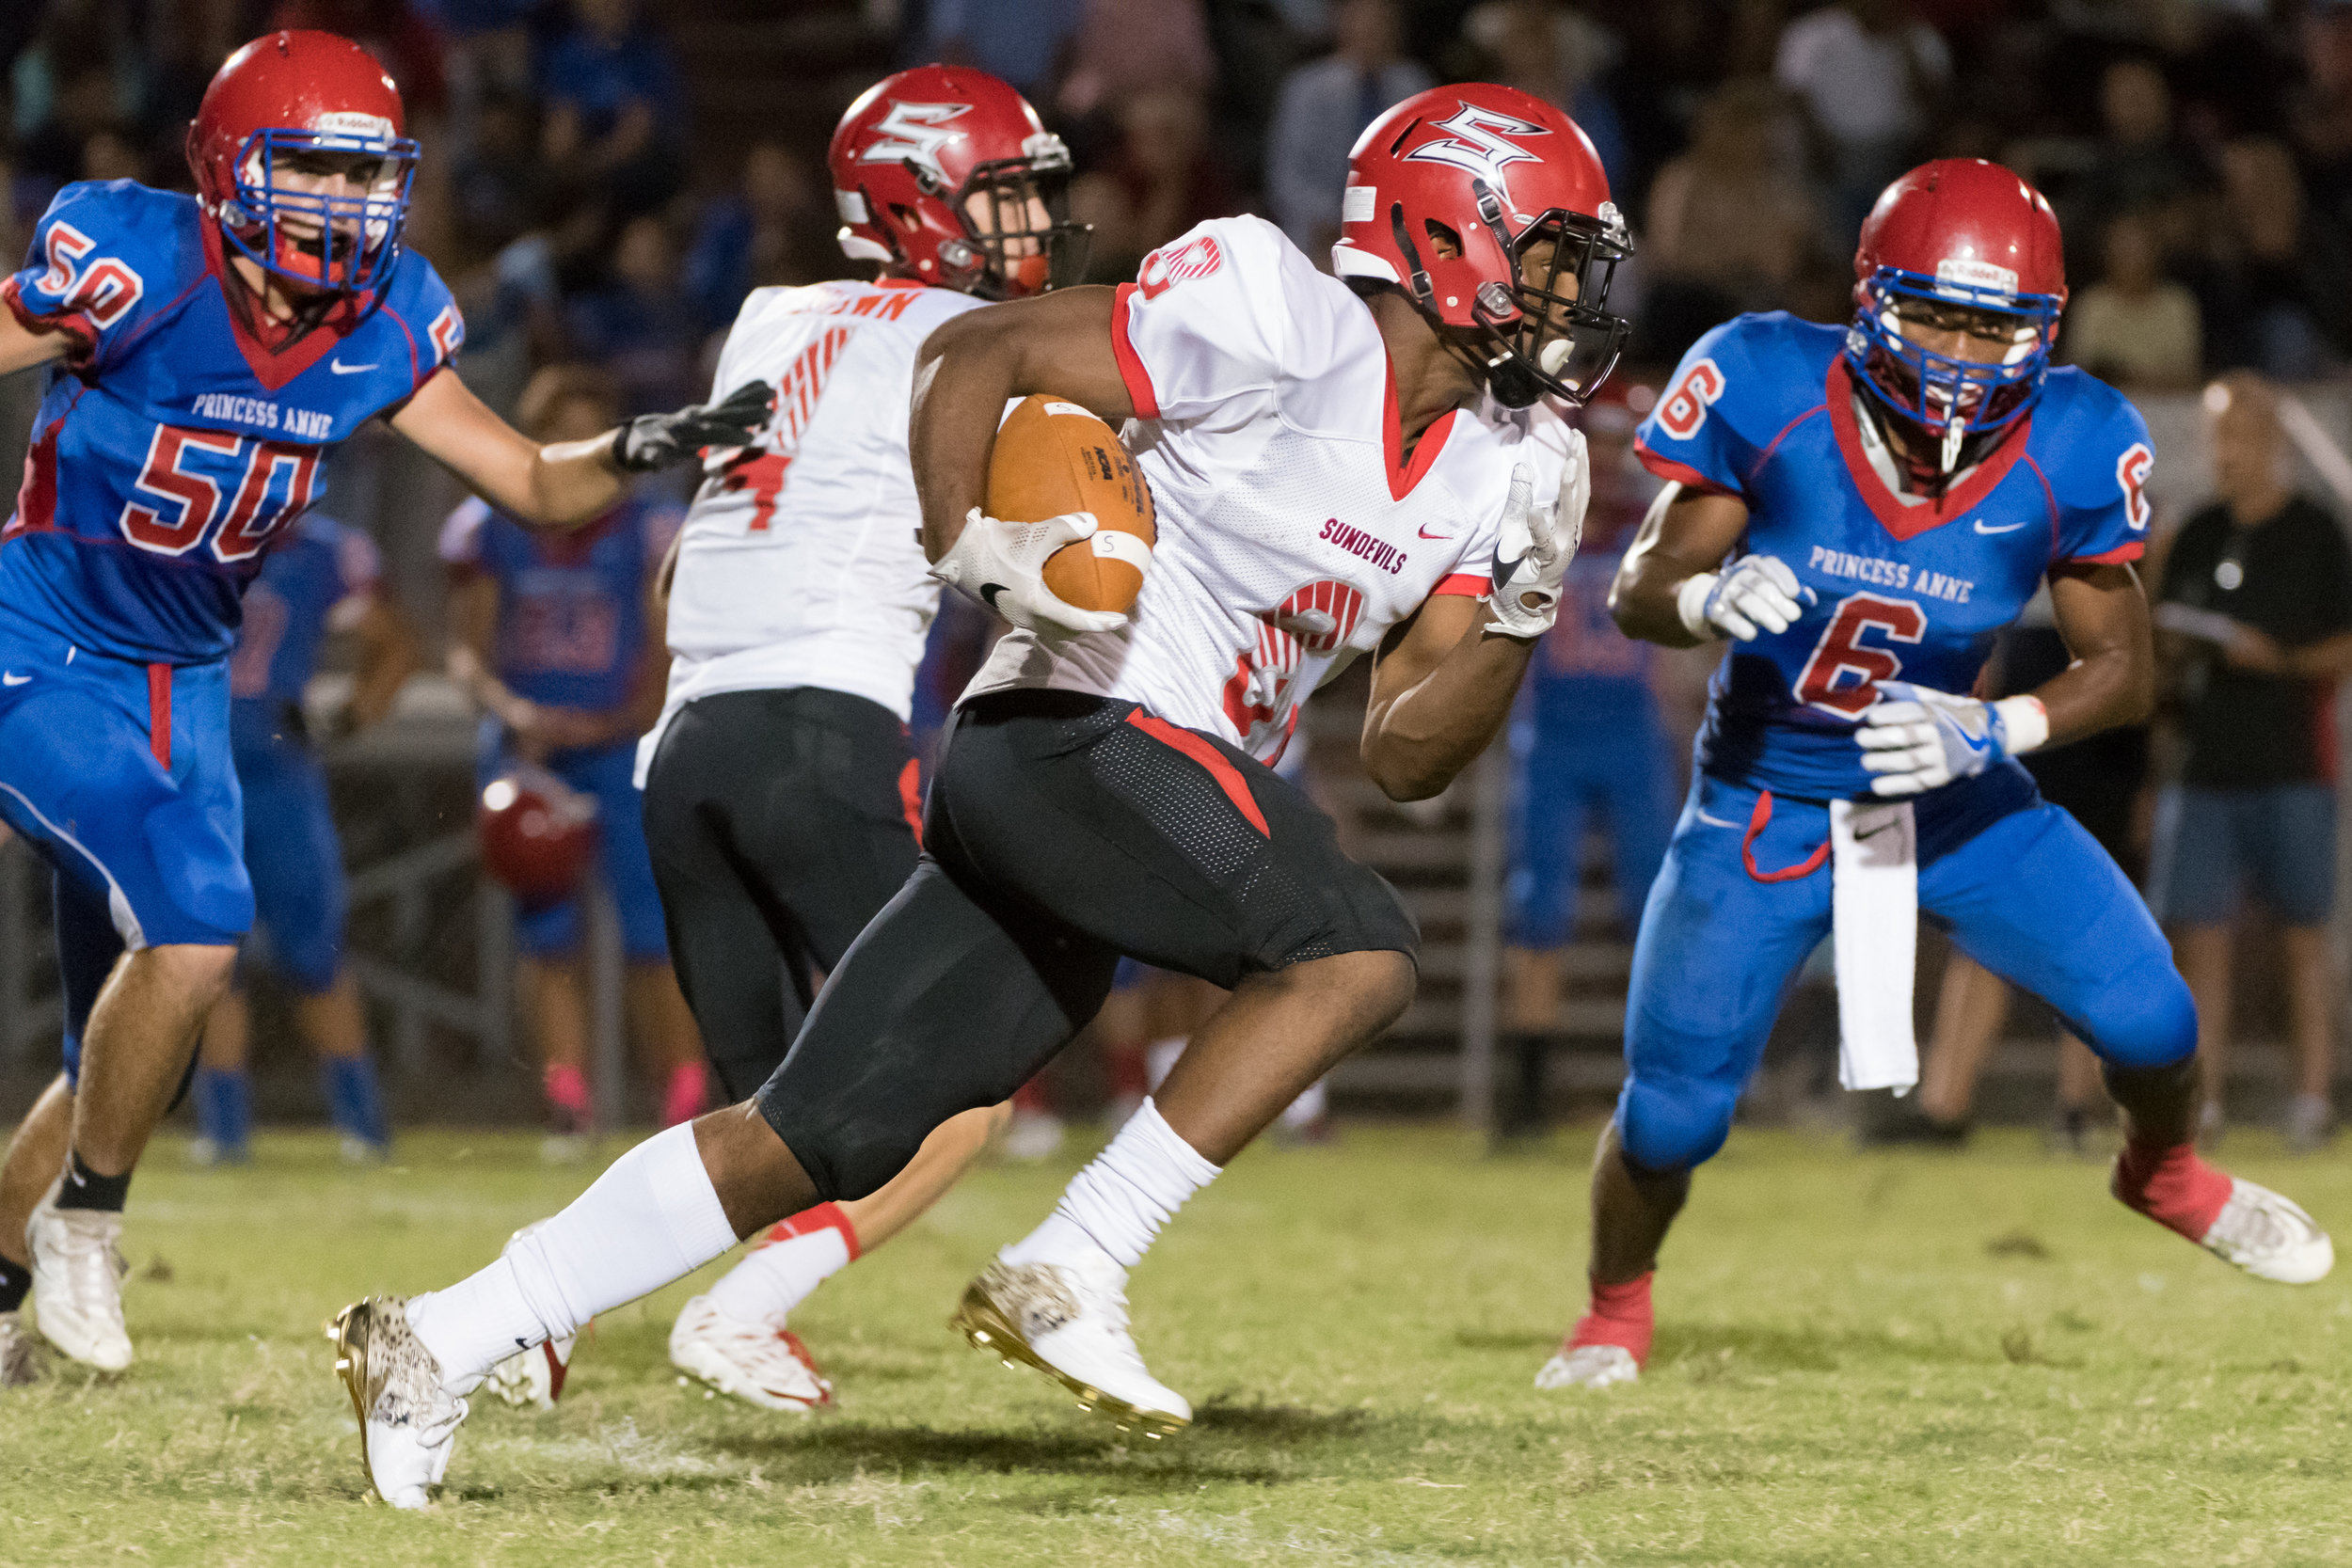 Salem running back Davonte Williams runs the ball during Friday night's game against Princess Anne.